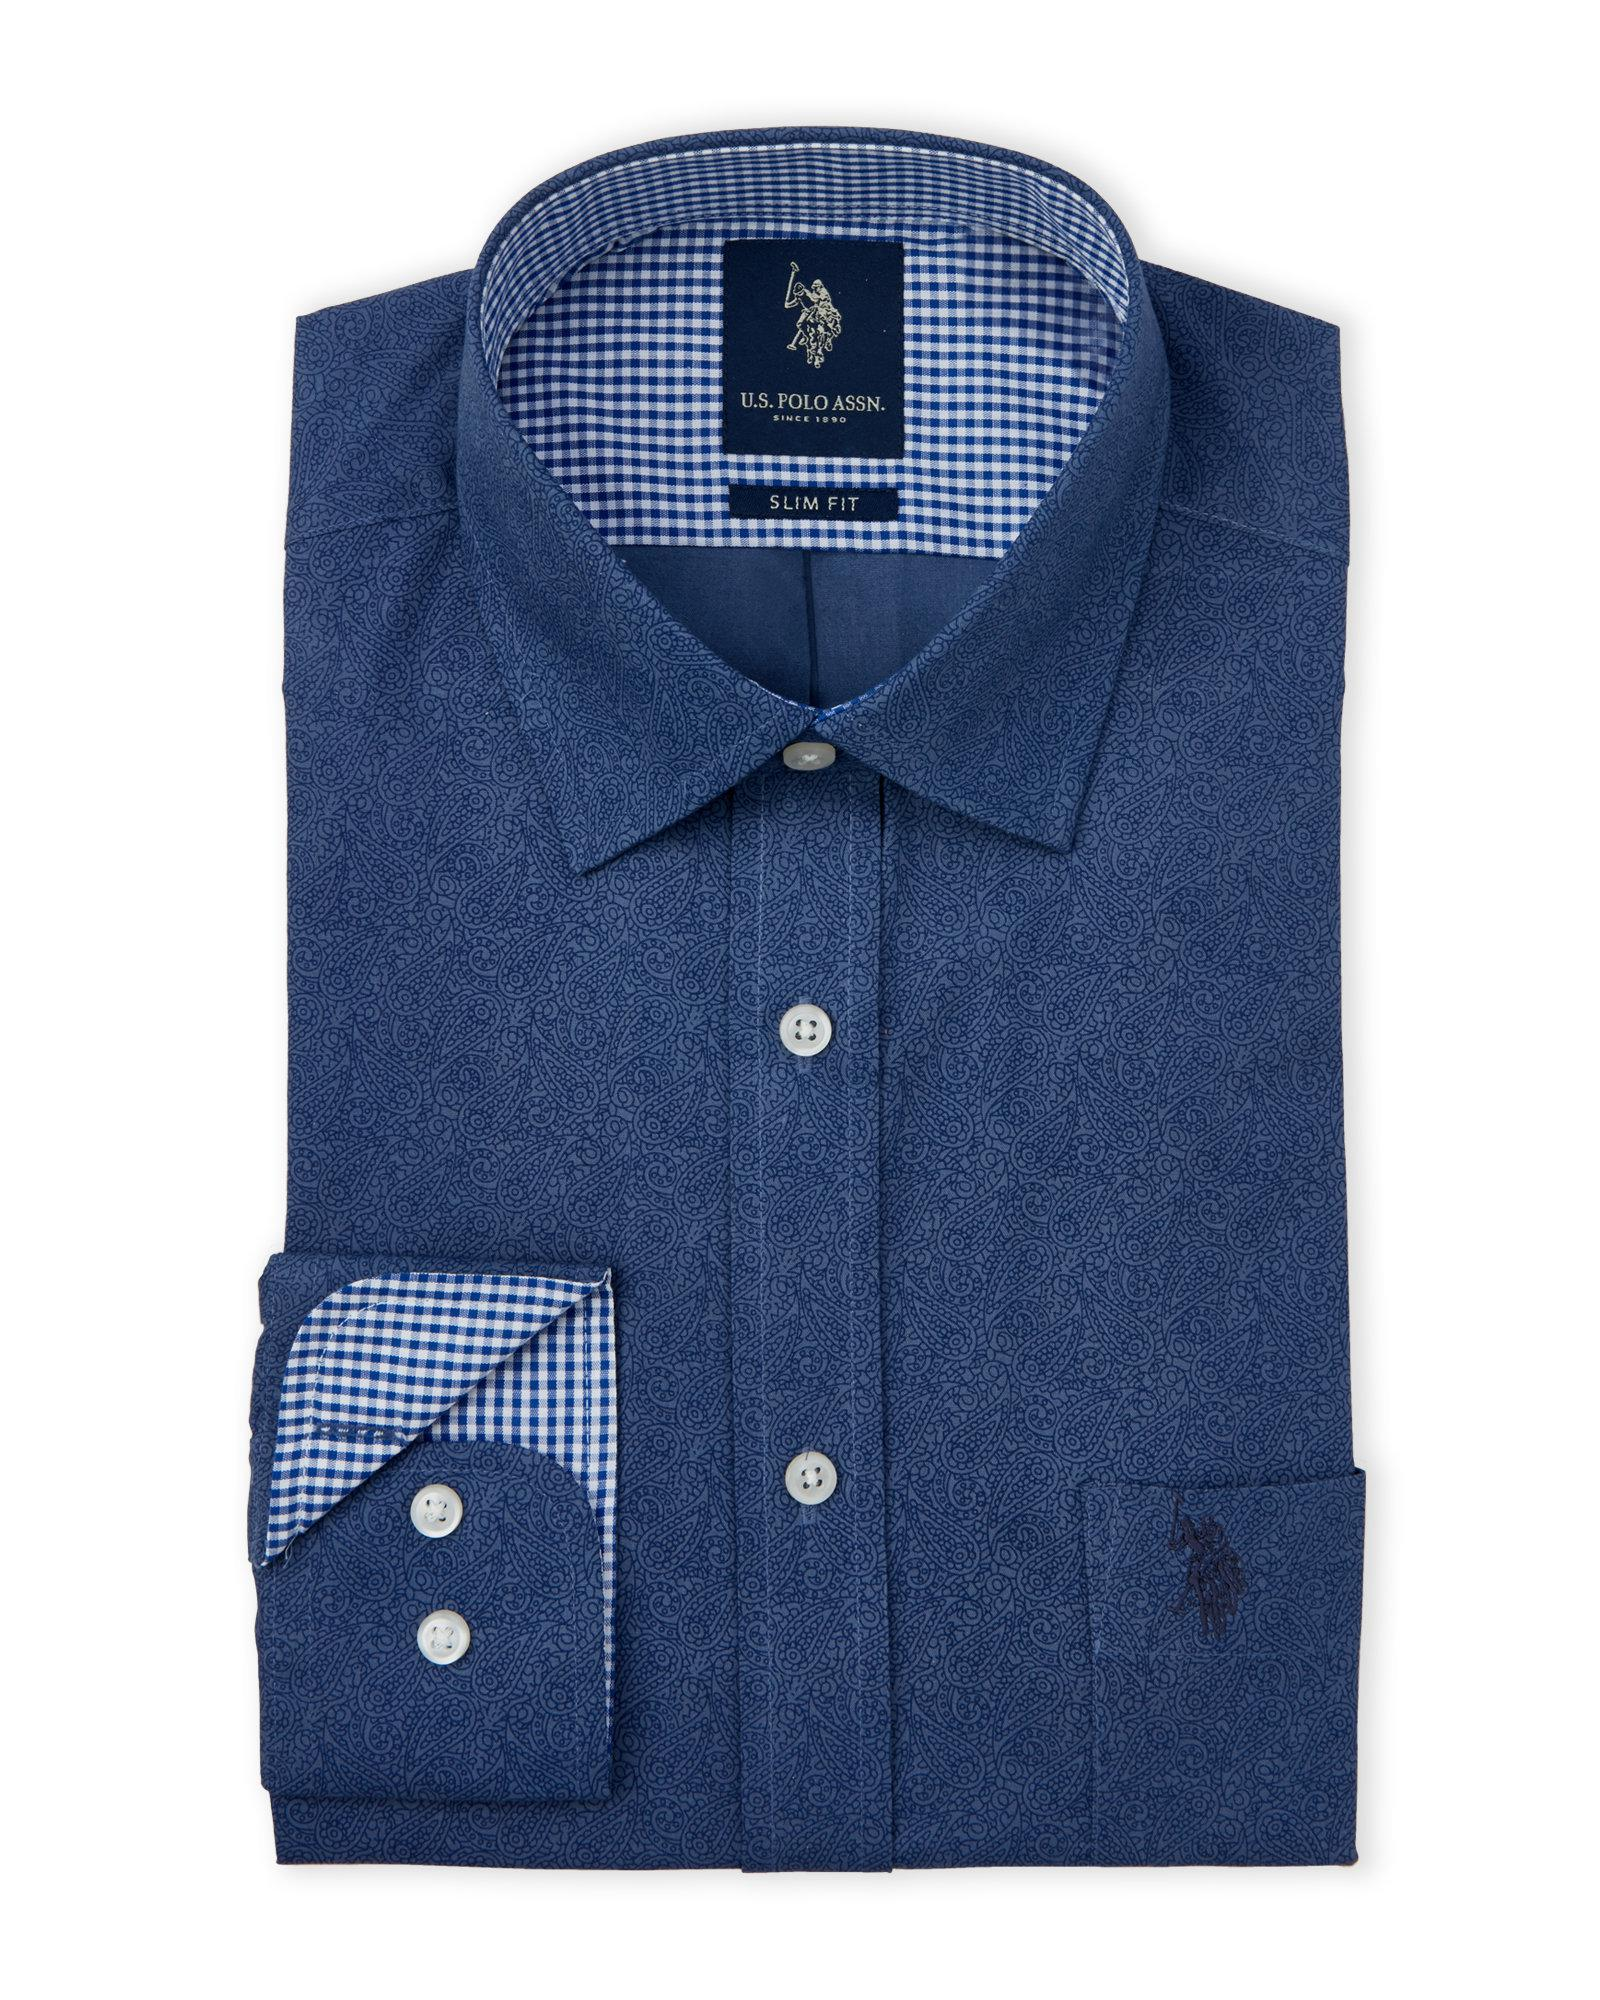 19224c687 Lyst - U.S. POLO ASSN. Paisley Slim Fit Dress Shirt in Blue for Men